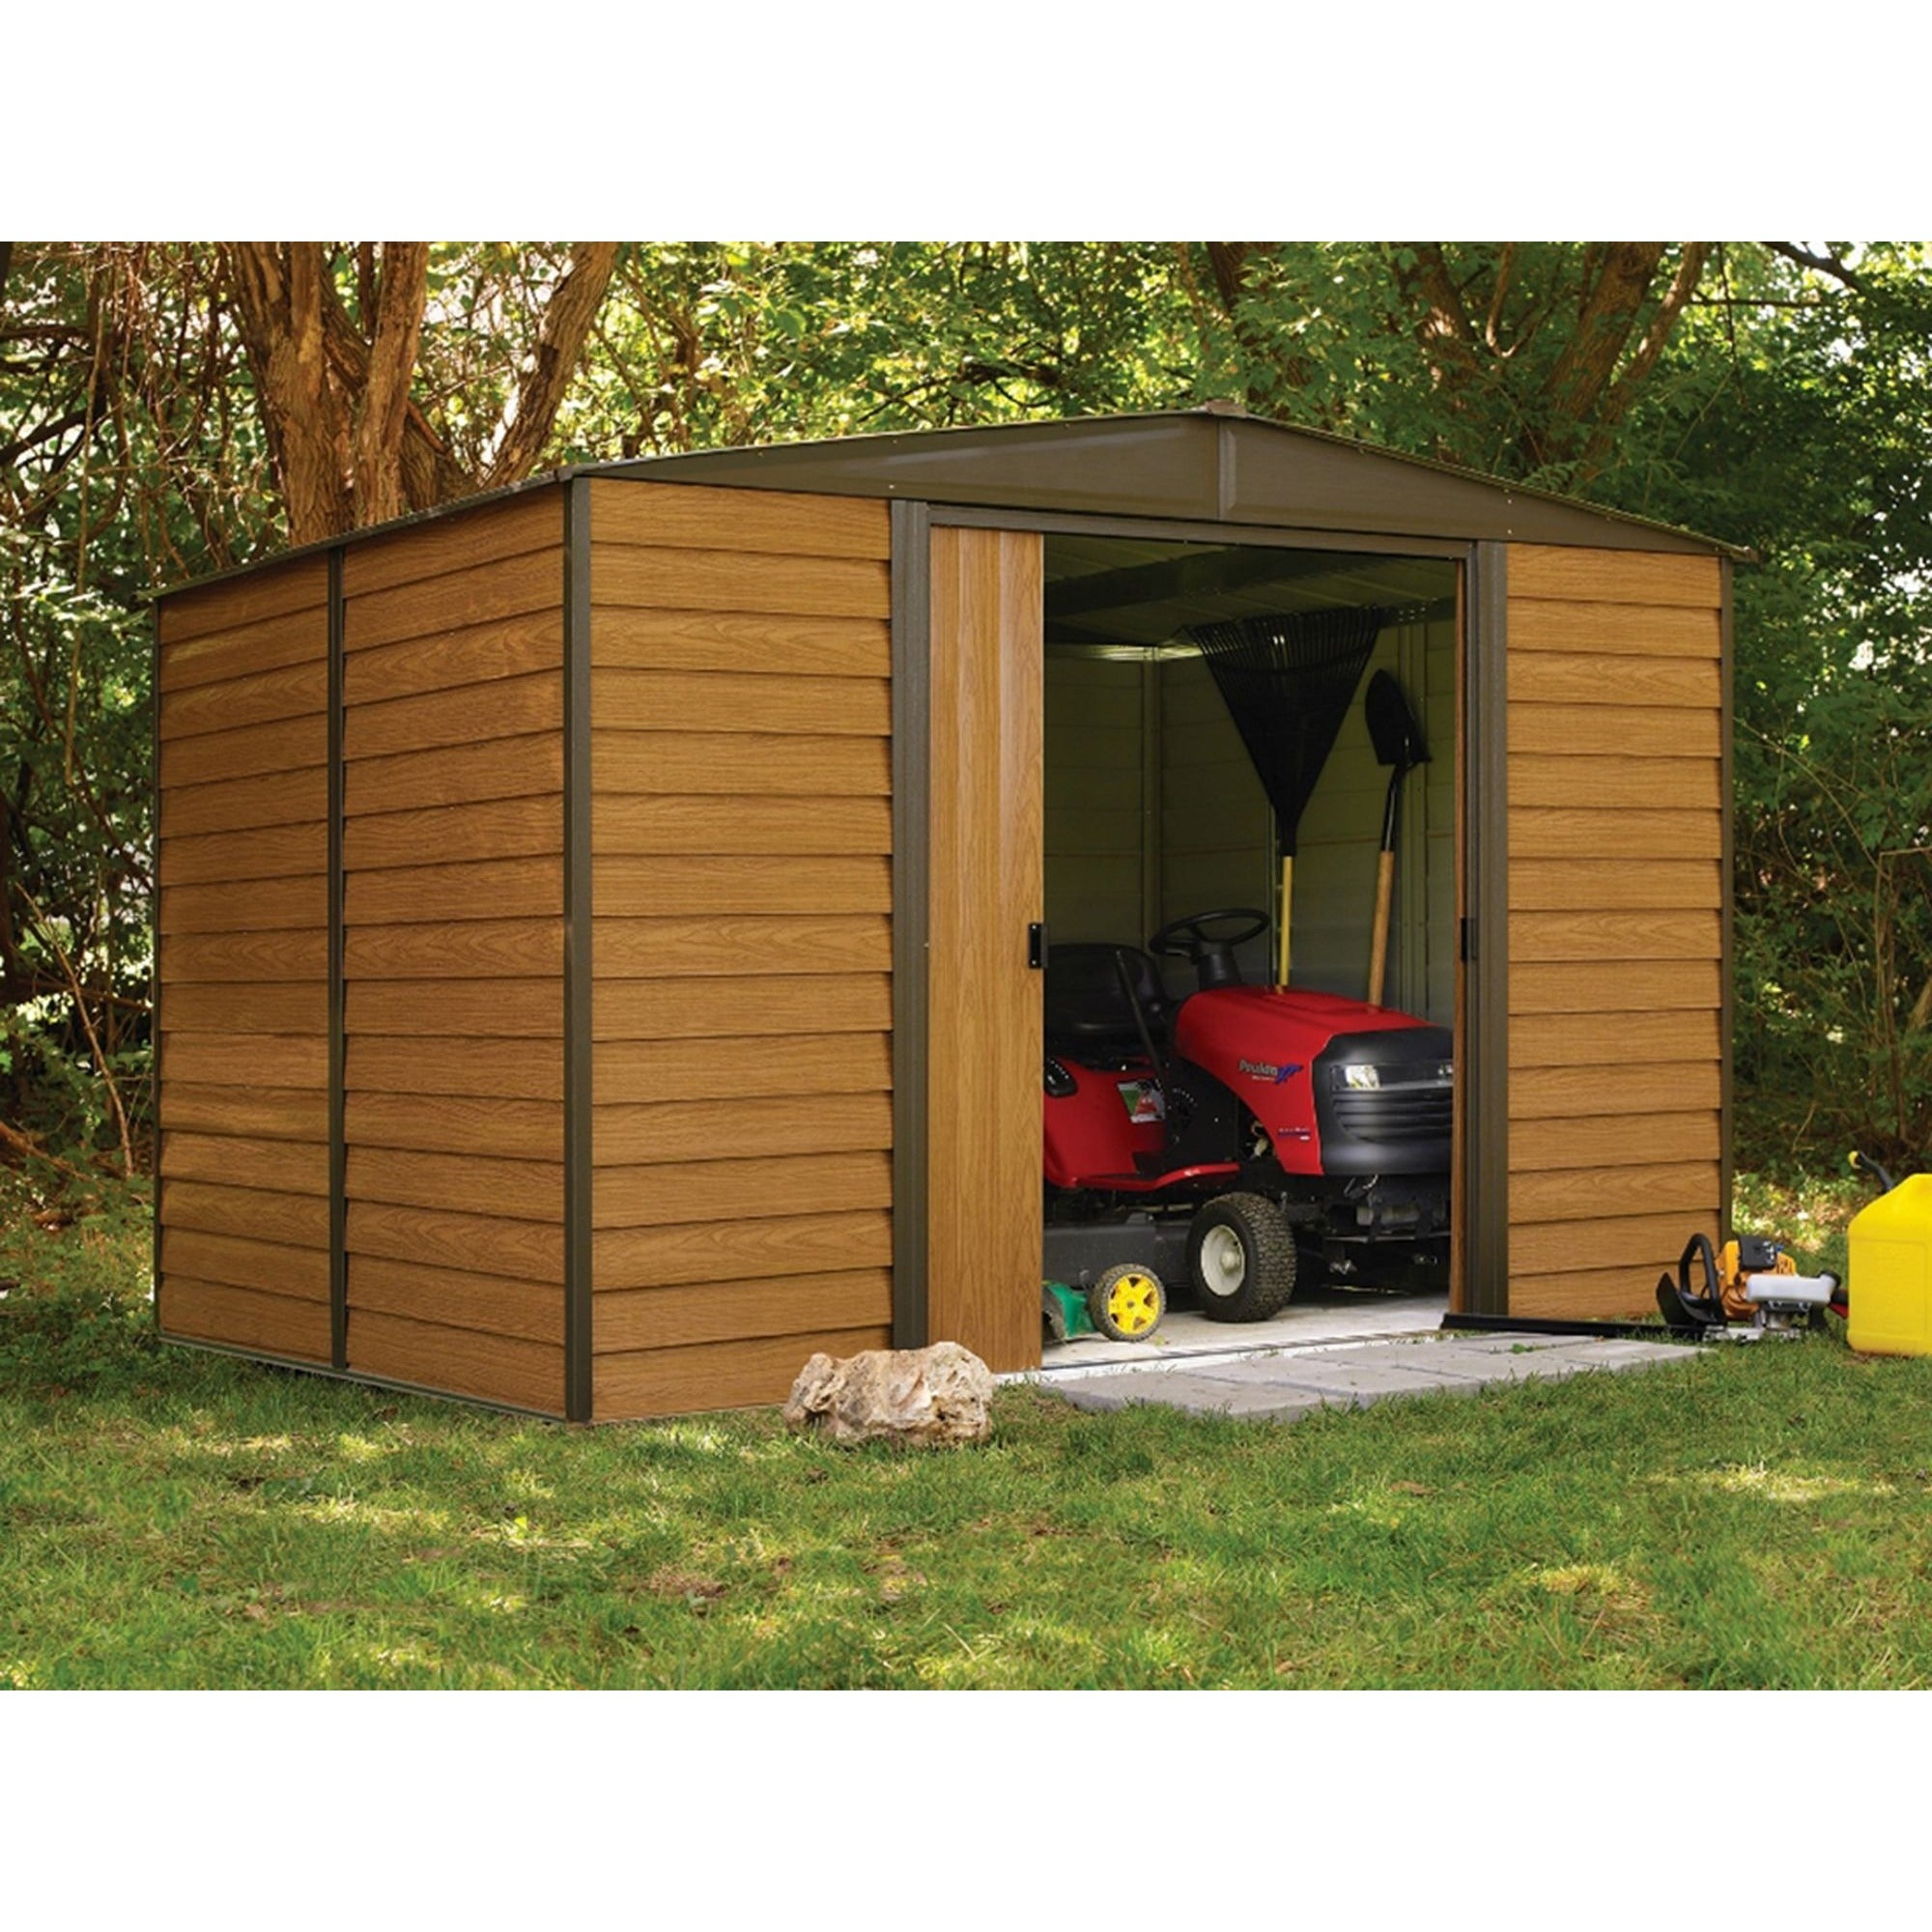 treated direct overlap forest sheds shed buy for less pressure apex